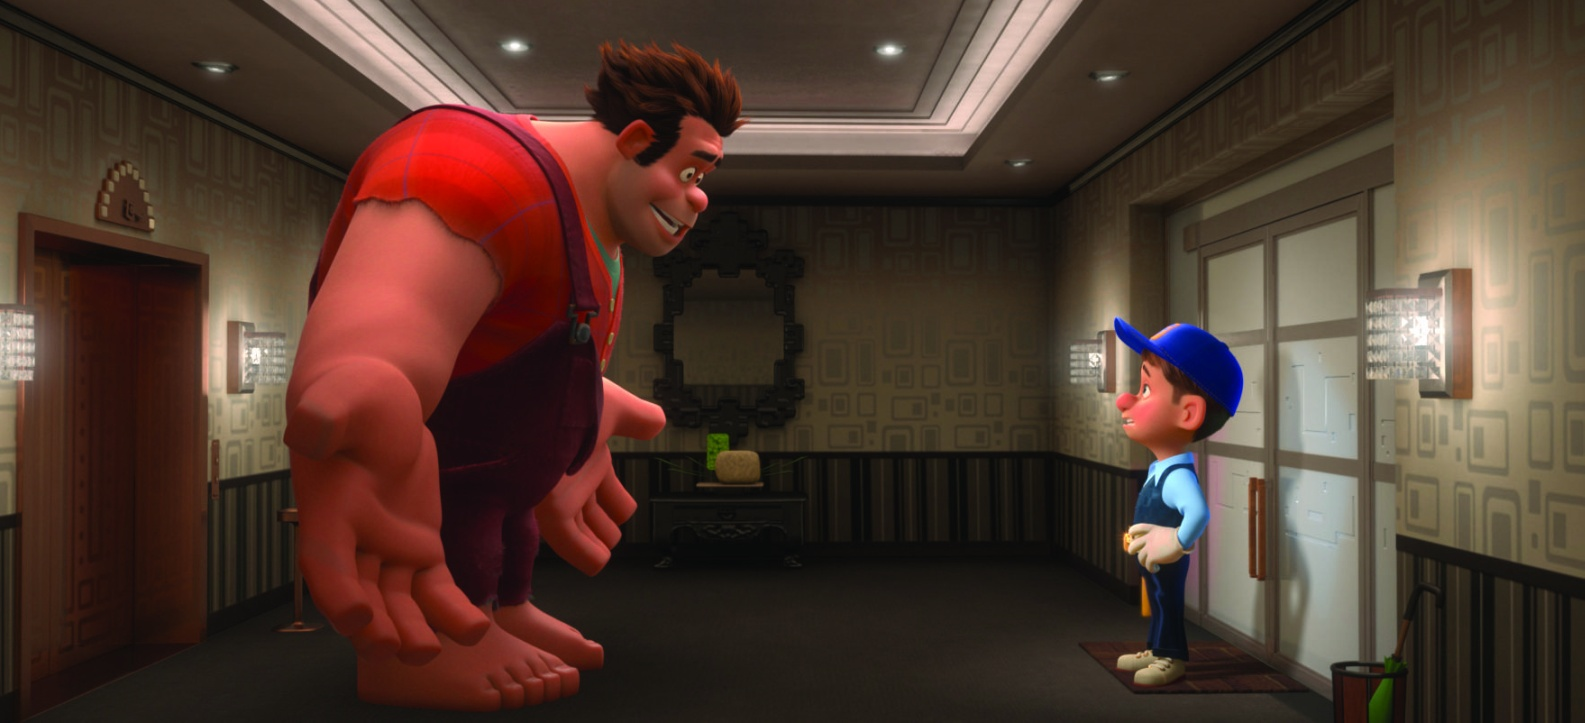 (l to r) Wreck-It Ralph (voiced by John C. Reilly) and Fix-It Felix (voiced by Jack McBrayer) in Wreck-It Ralph (2012)